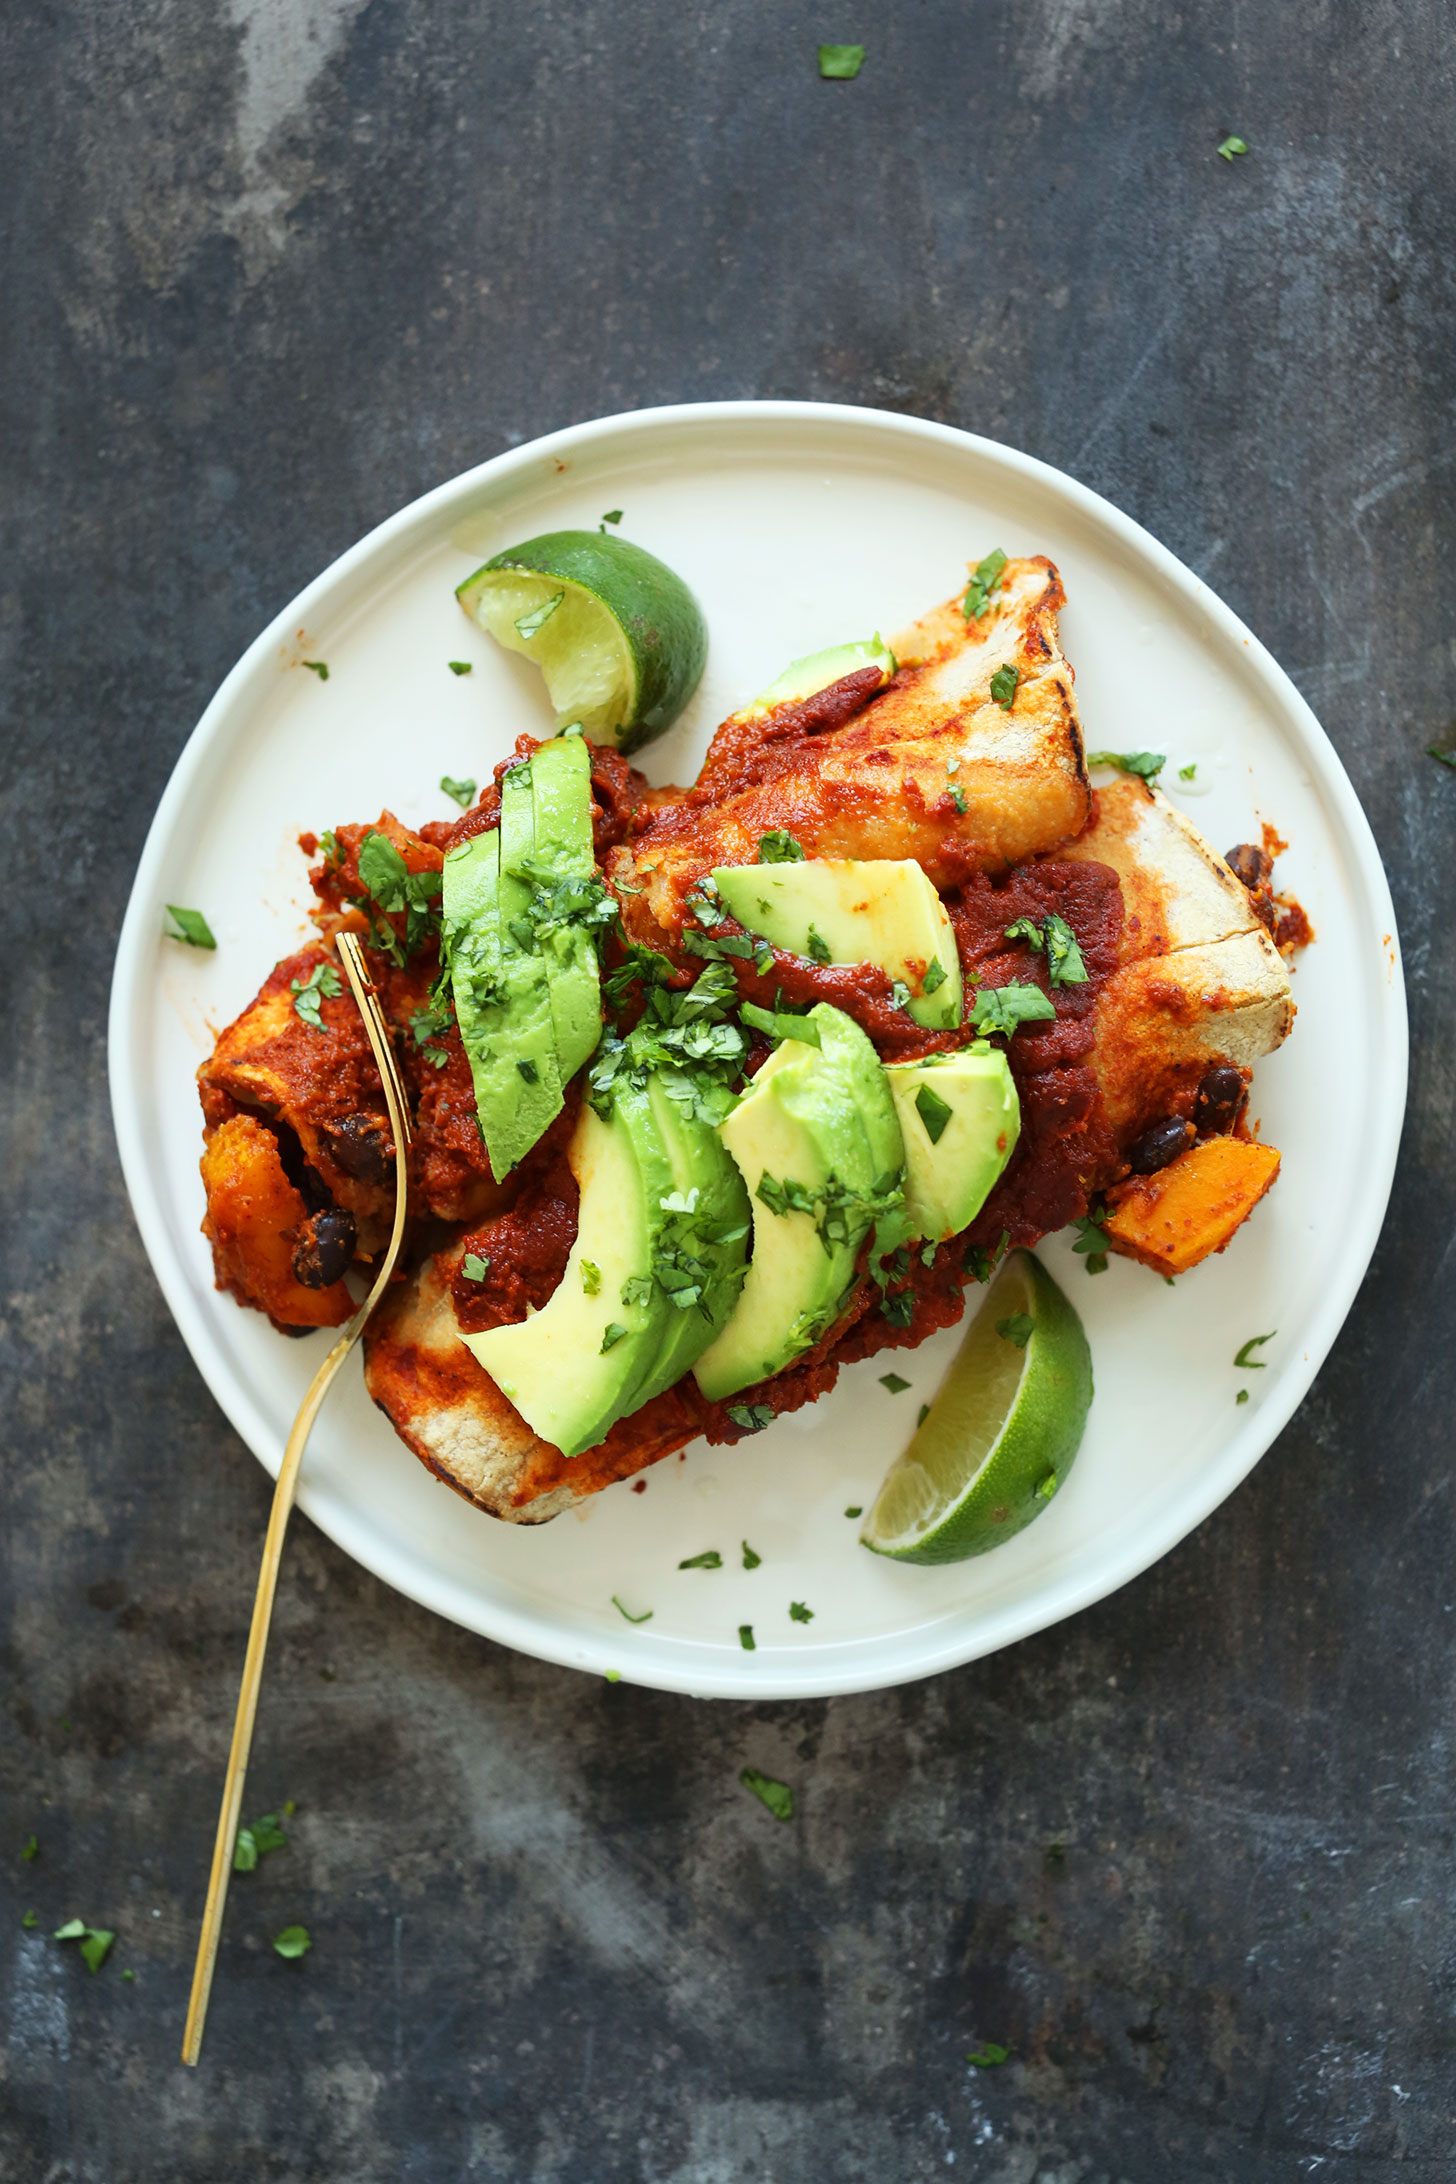 Plate with two Butternut Squash Enchiladas topped with avocado slices